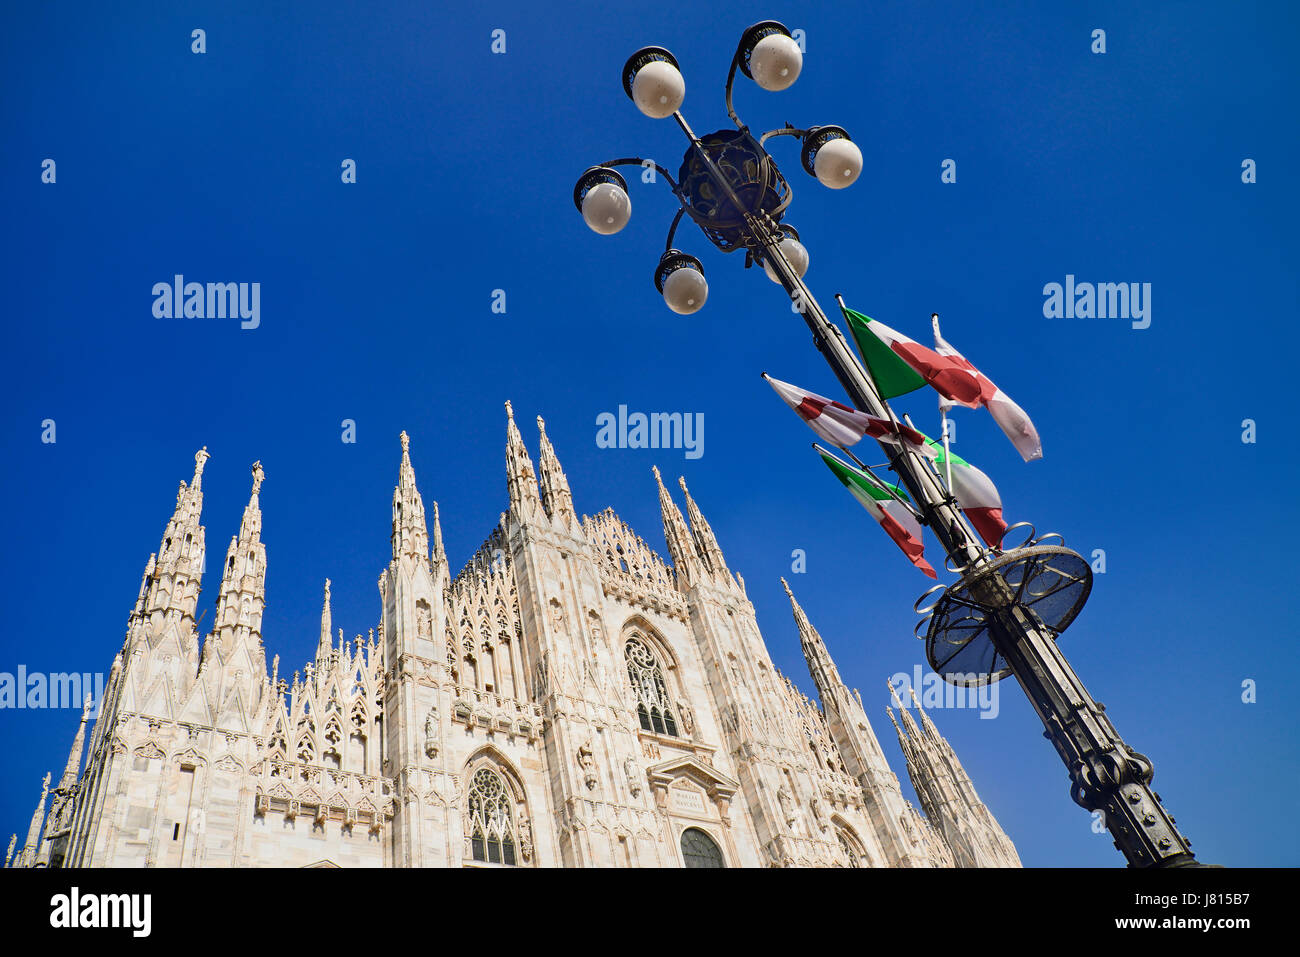 Italy, Lombardy, Milan. Milan Duomo or Cathedral, A section of the facade with a lamp post adorned by Italian flags. - Stock Image